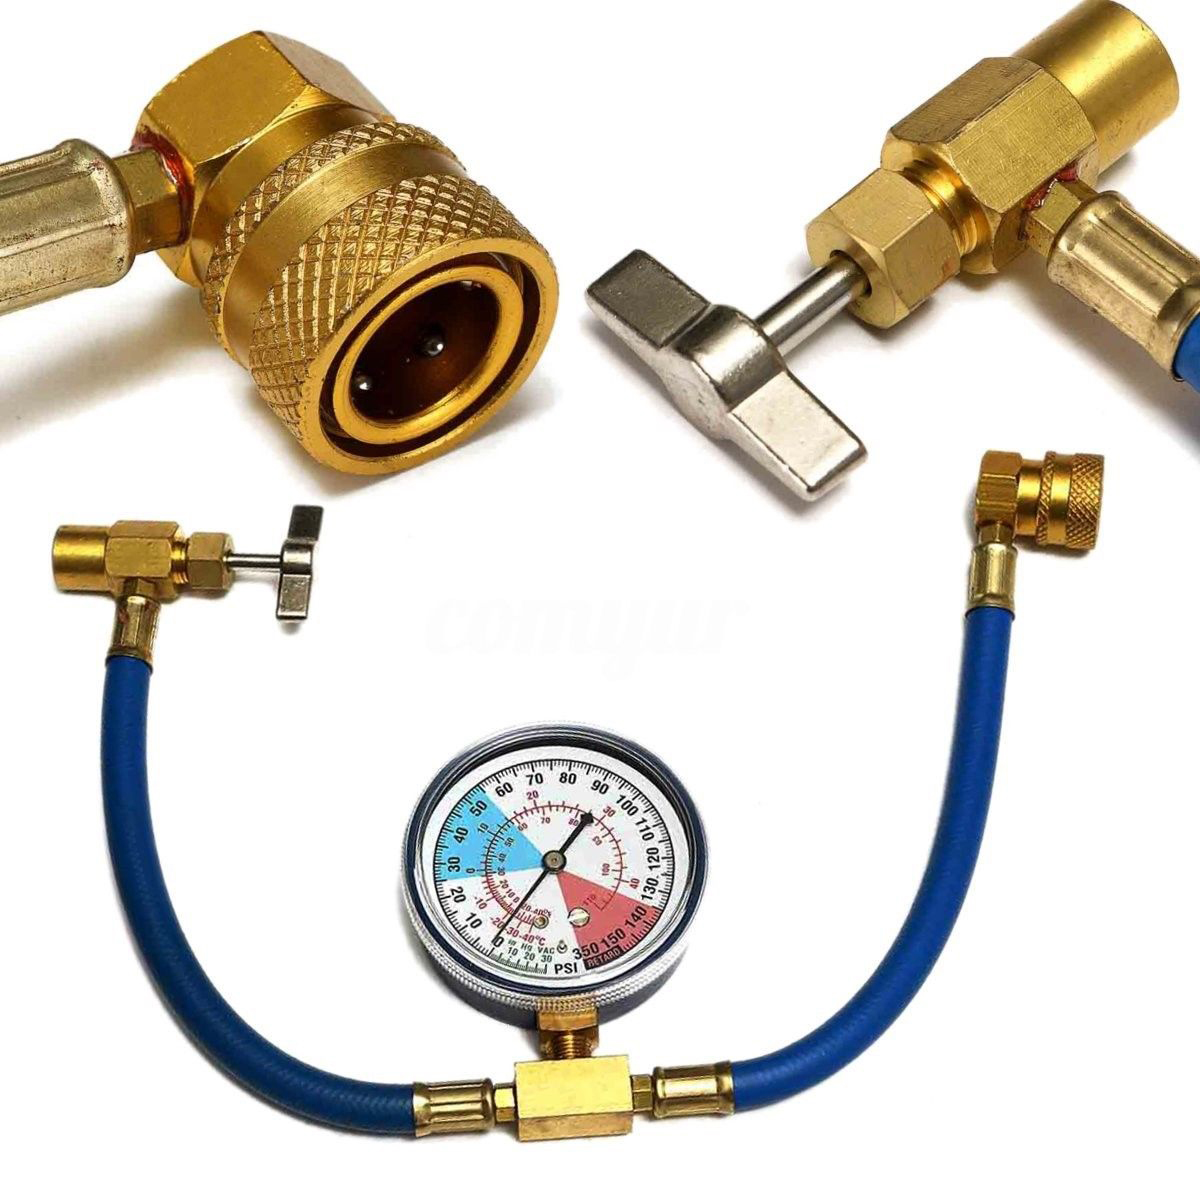 Car Air Conditioning AC R134A Refrigerant Hose Pressure Gauge Kits 600~300  PSI accessories parts high quality suitable for cars